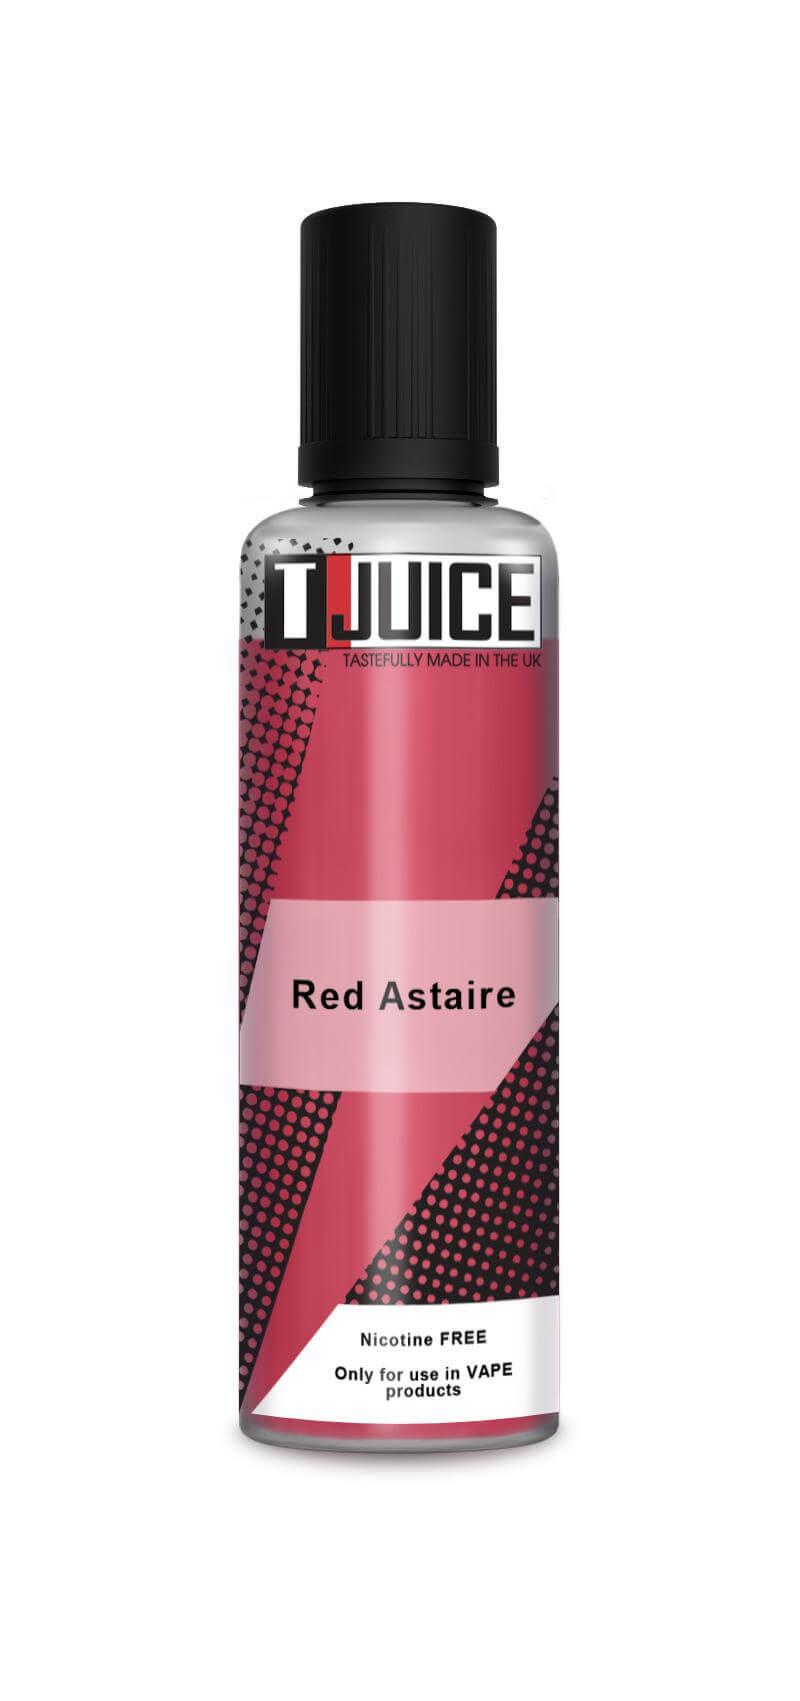 Red Astaire TJuice 50ml Shortfill 0MG